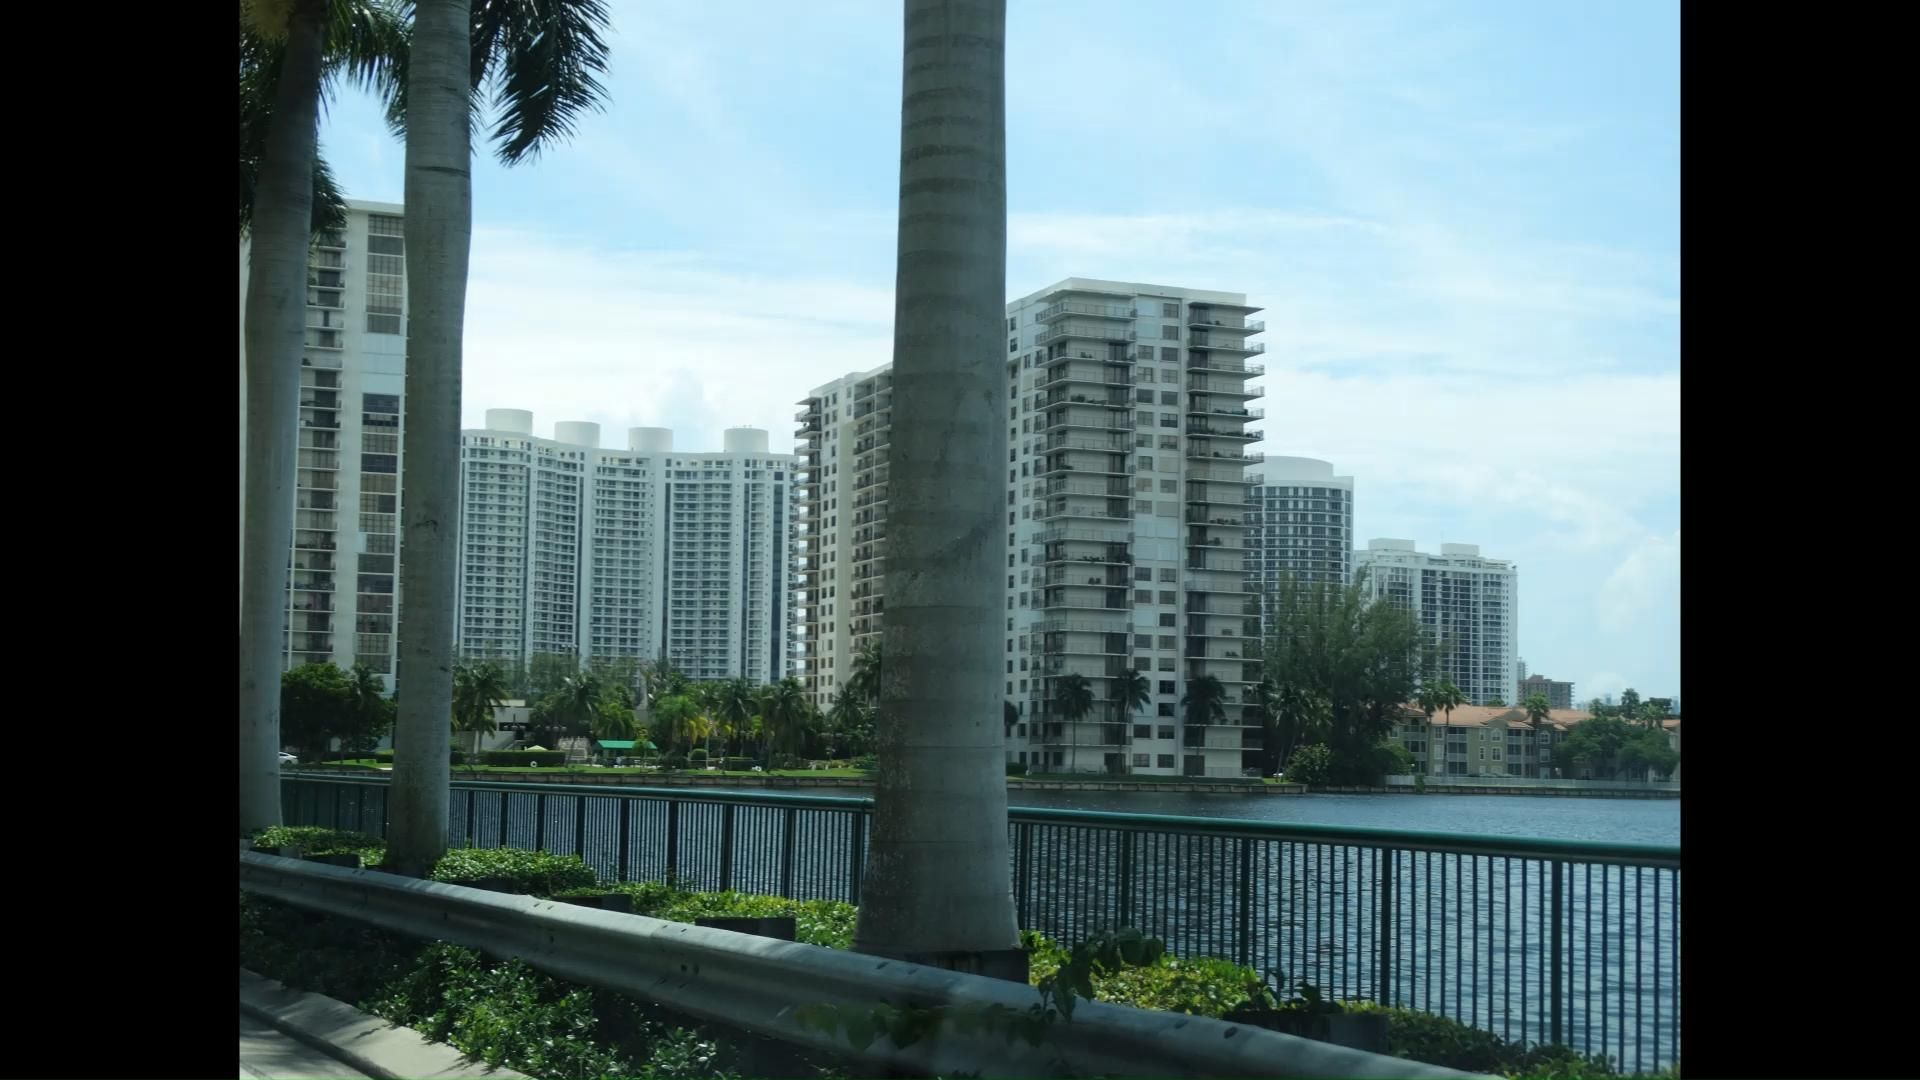 Brand New 2 Bd 2ba Rental In Aventura Fl Ready For Immediate Occupancy Newly Remodeled Painted And Wood Fl Video Selling House Rental Apartments Beautiful Views